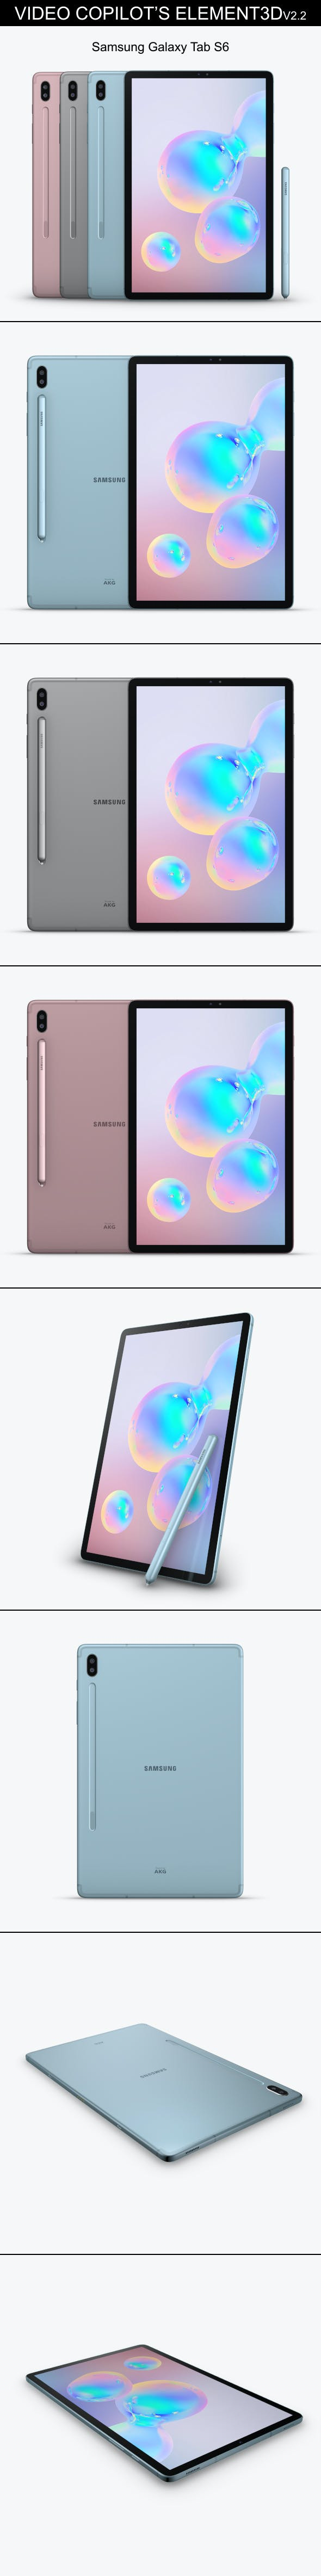 Element3D - Samsung Galaxy Tab S6 - 3DOcean Item for Sale